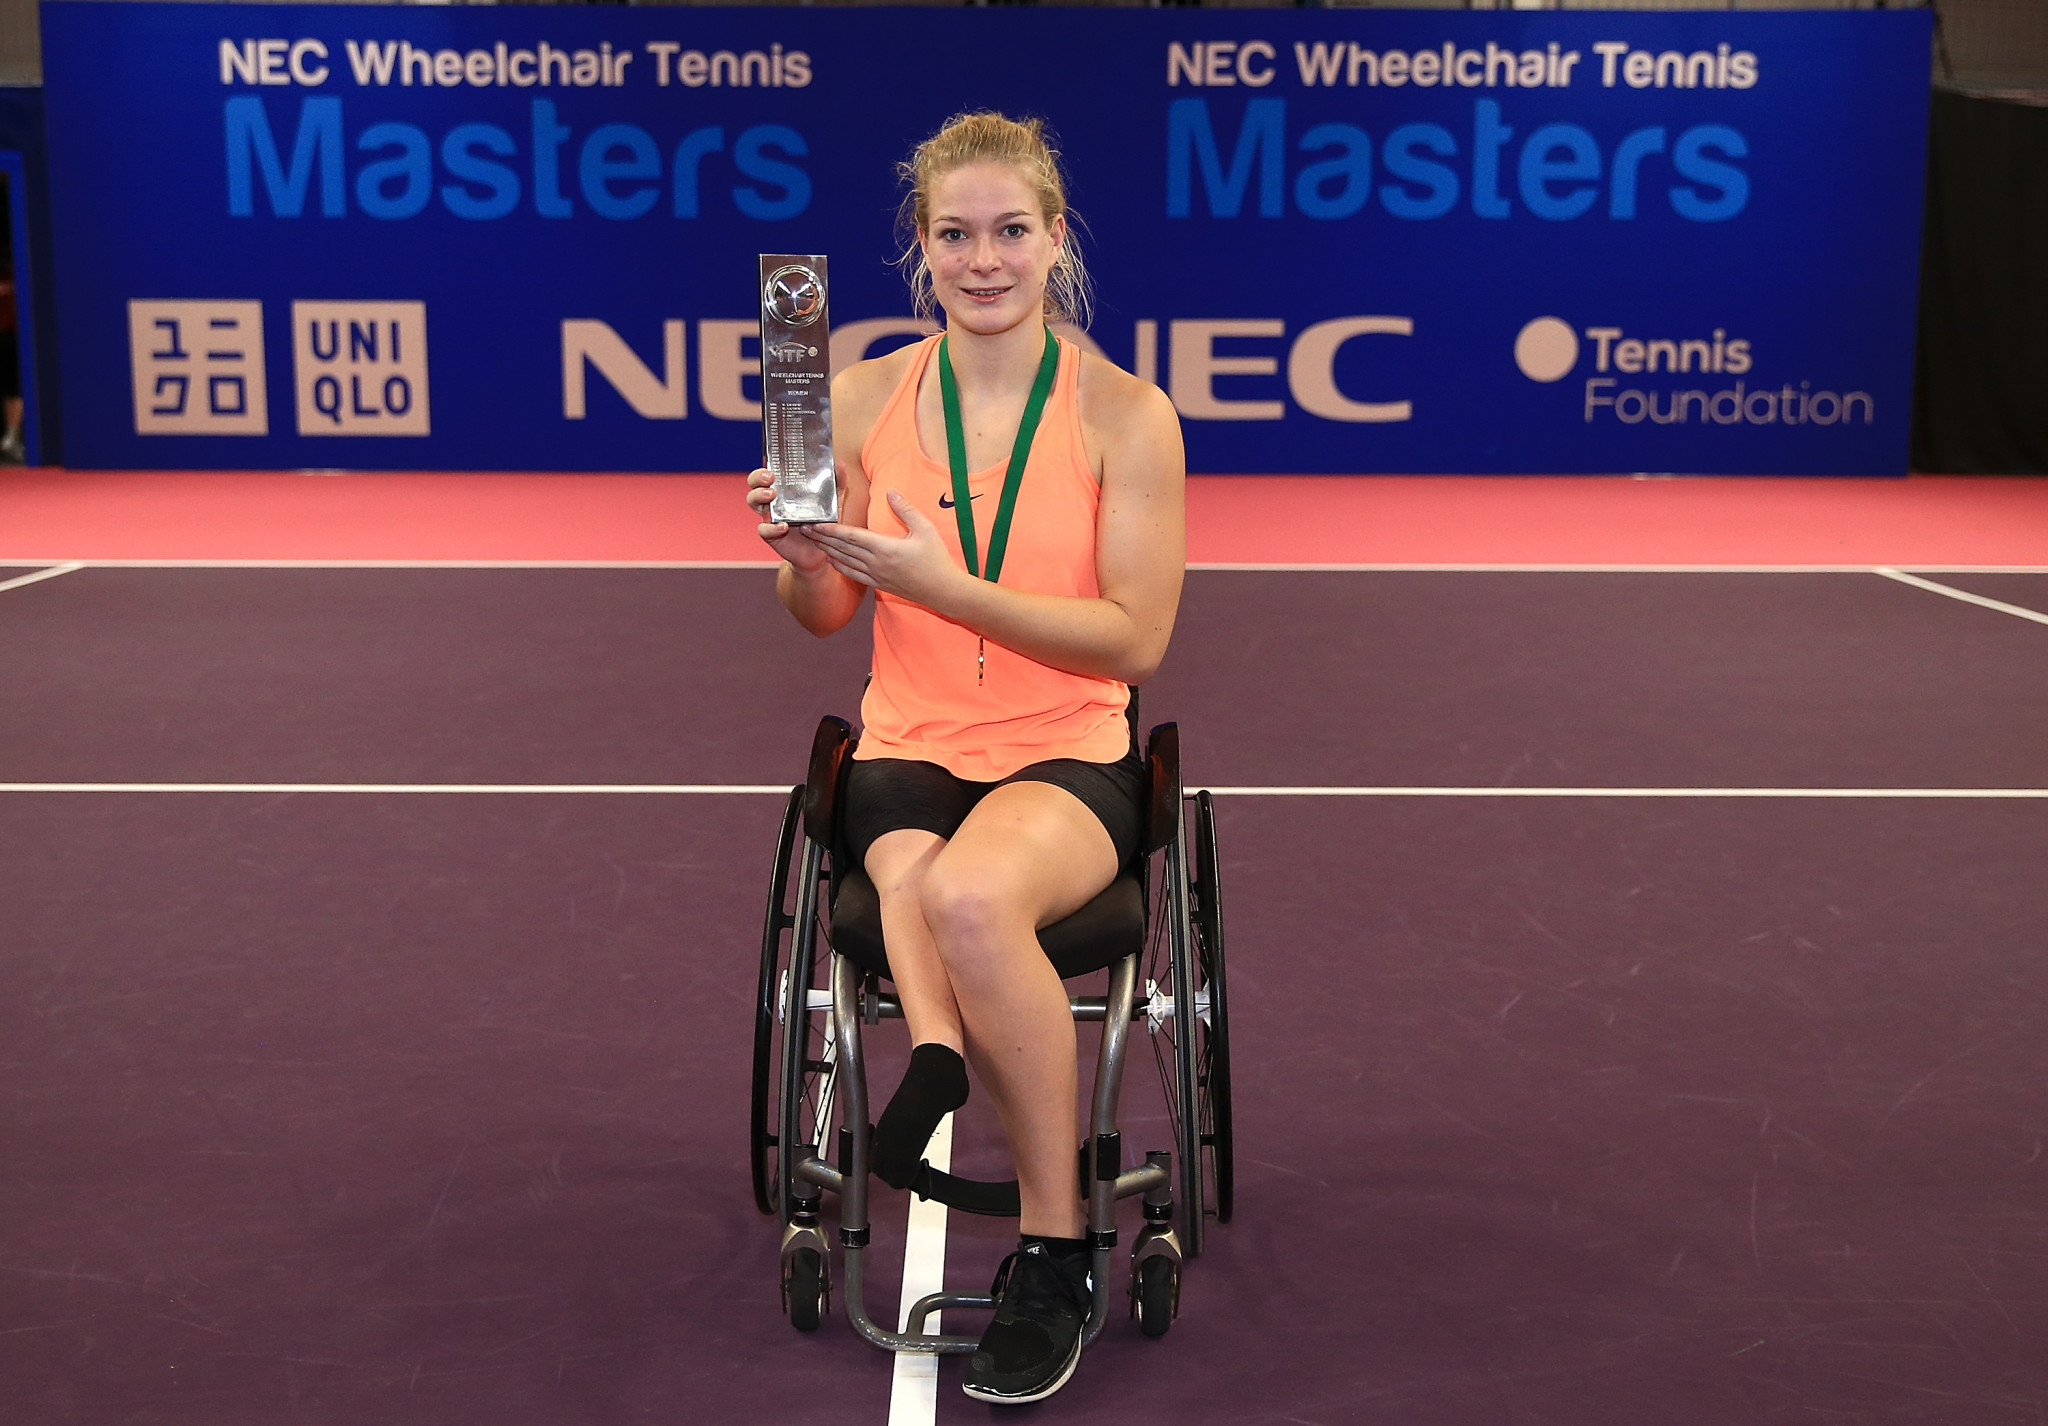 NEC donate 10 wheelchairs to International Tennis Federation in celebration of 25 year sponsorship